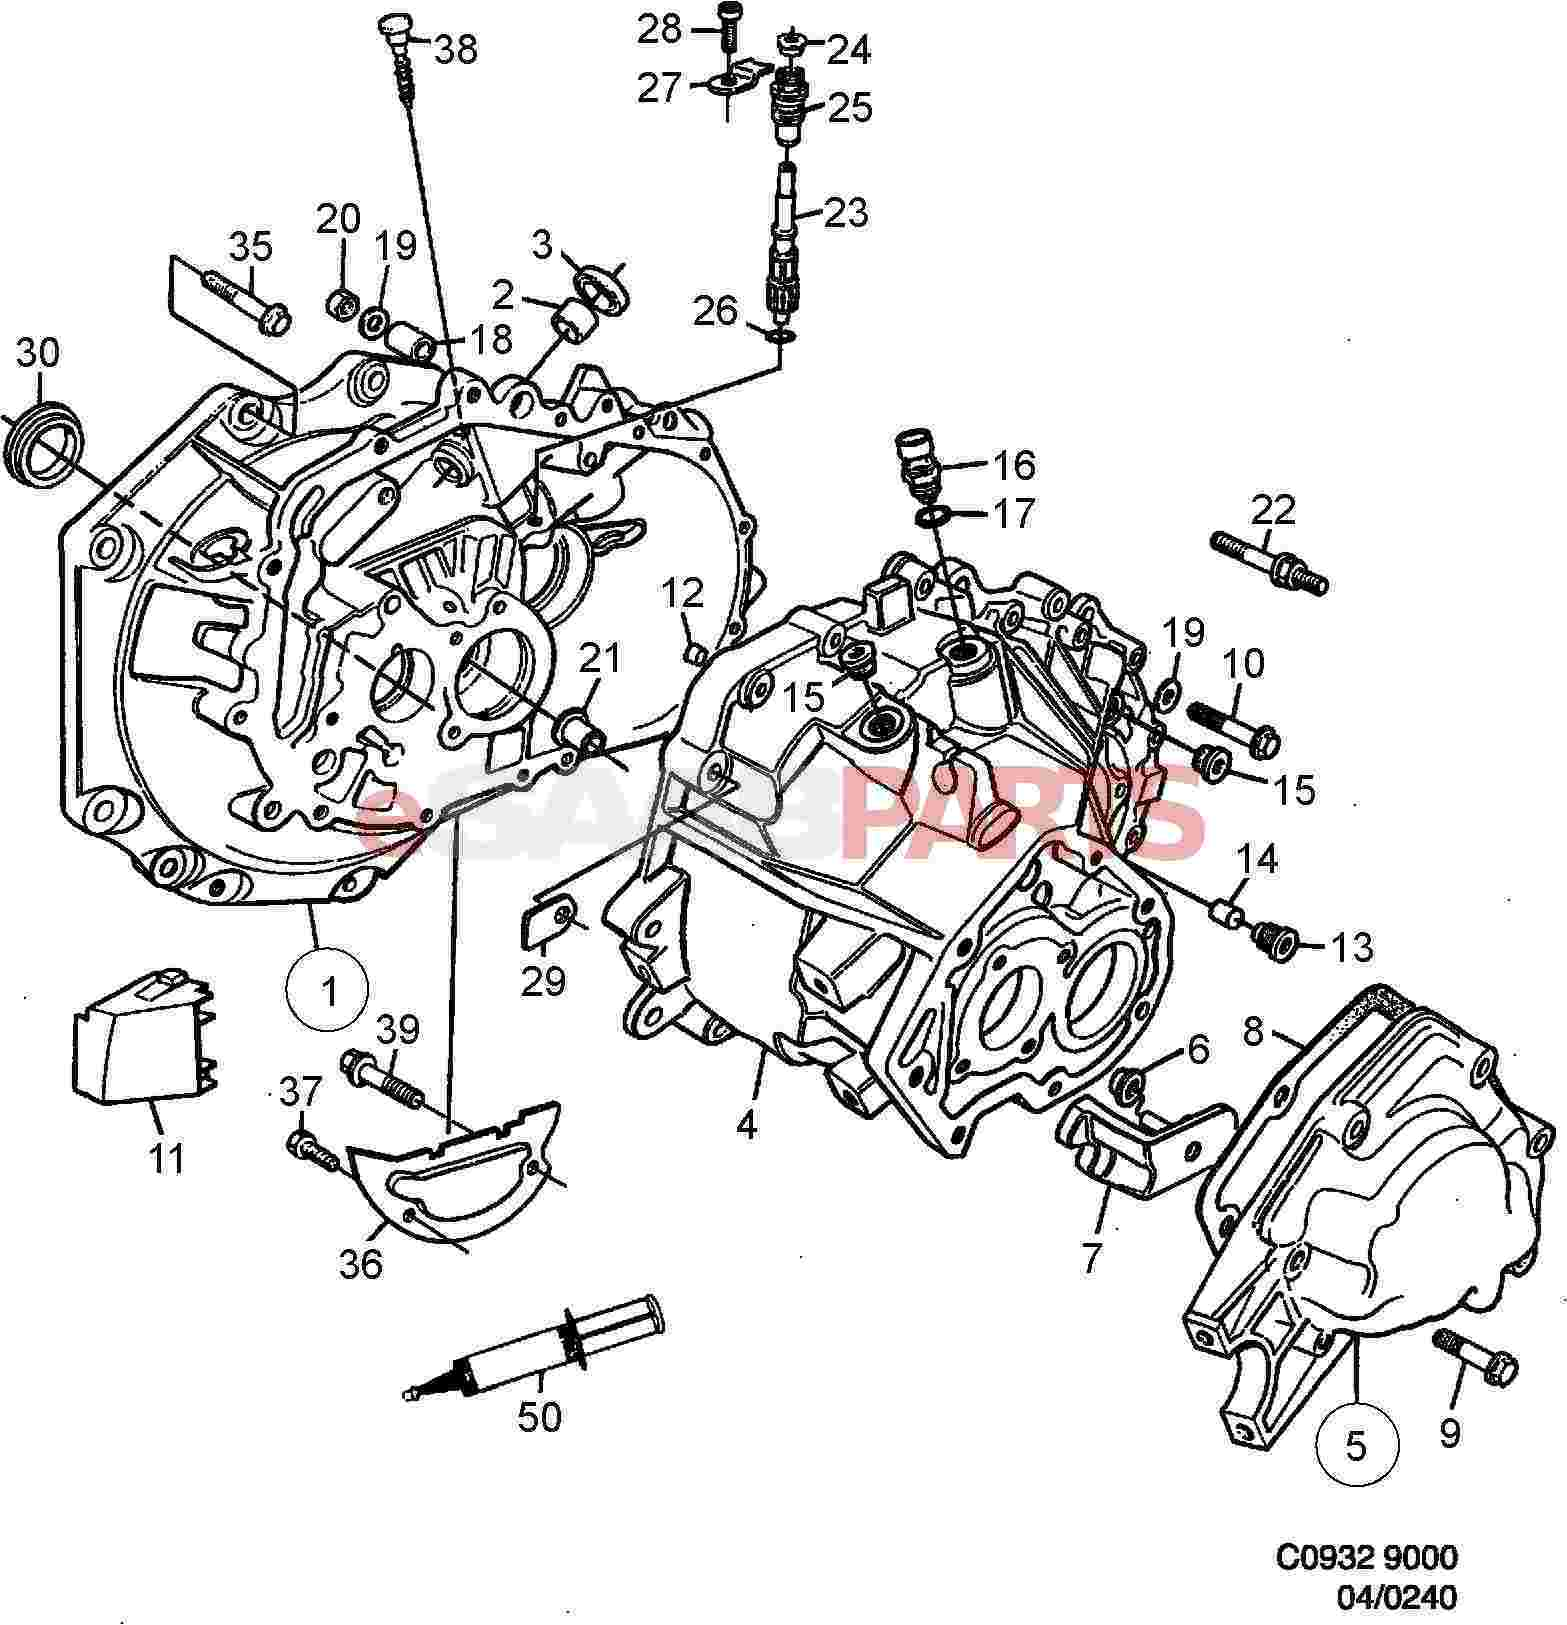 Ax15 Transmission Diagram